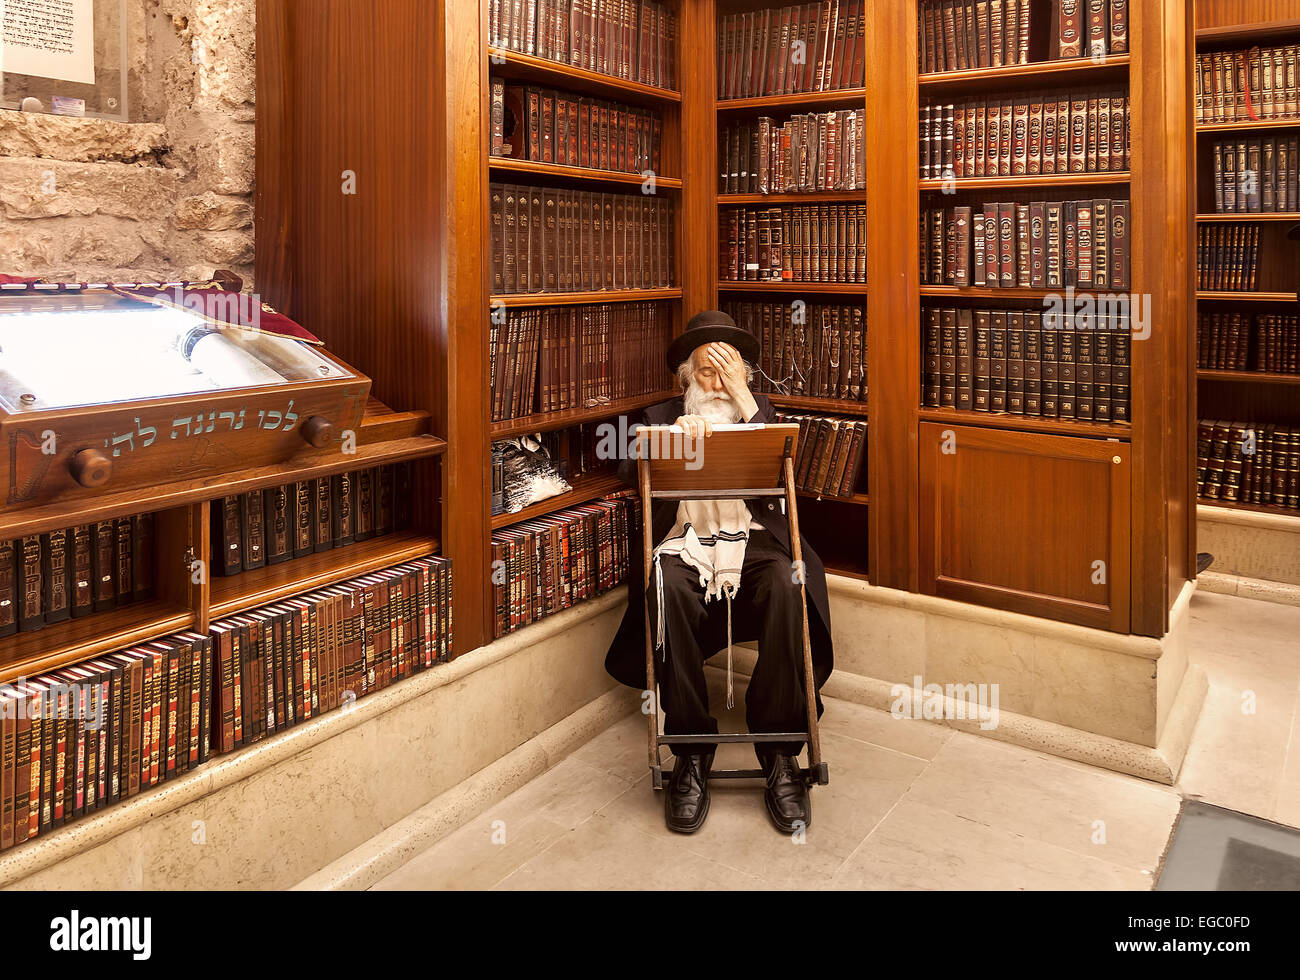 Old rabbi learns Torah among wooden bookshelves with holy books in Cave Synagogue, Jerusalem. Stock Photo